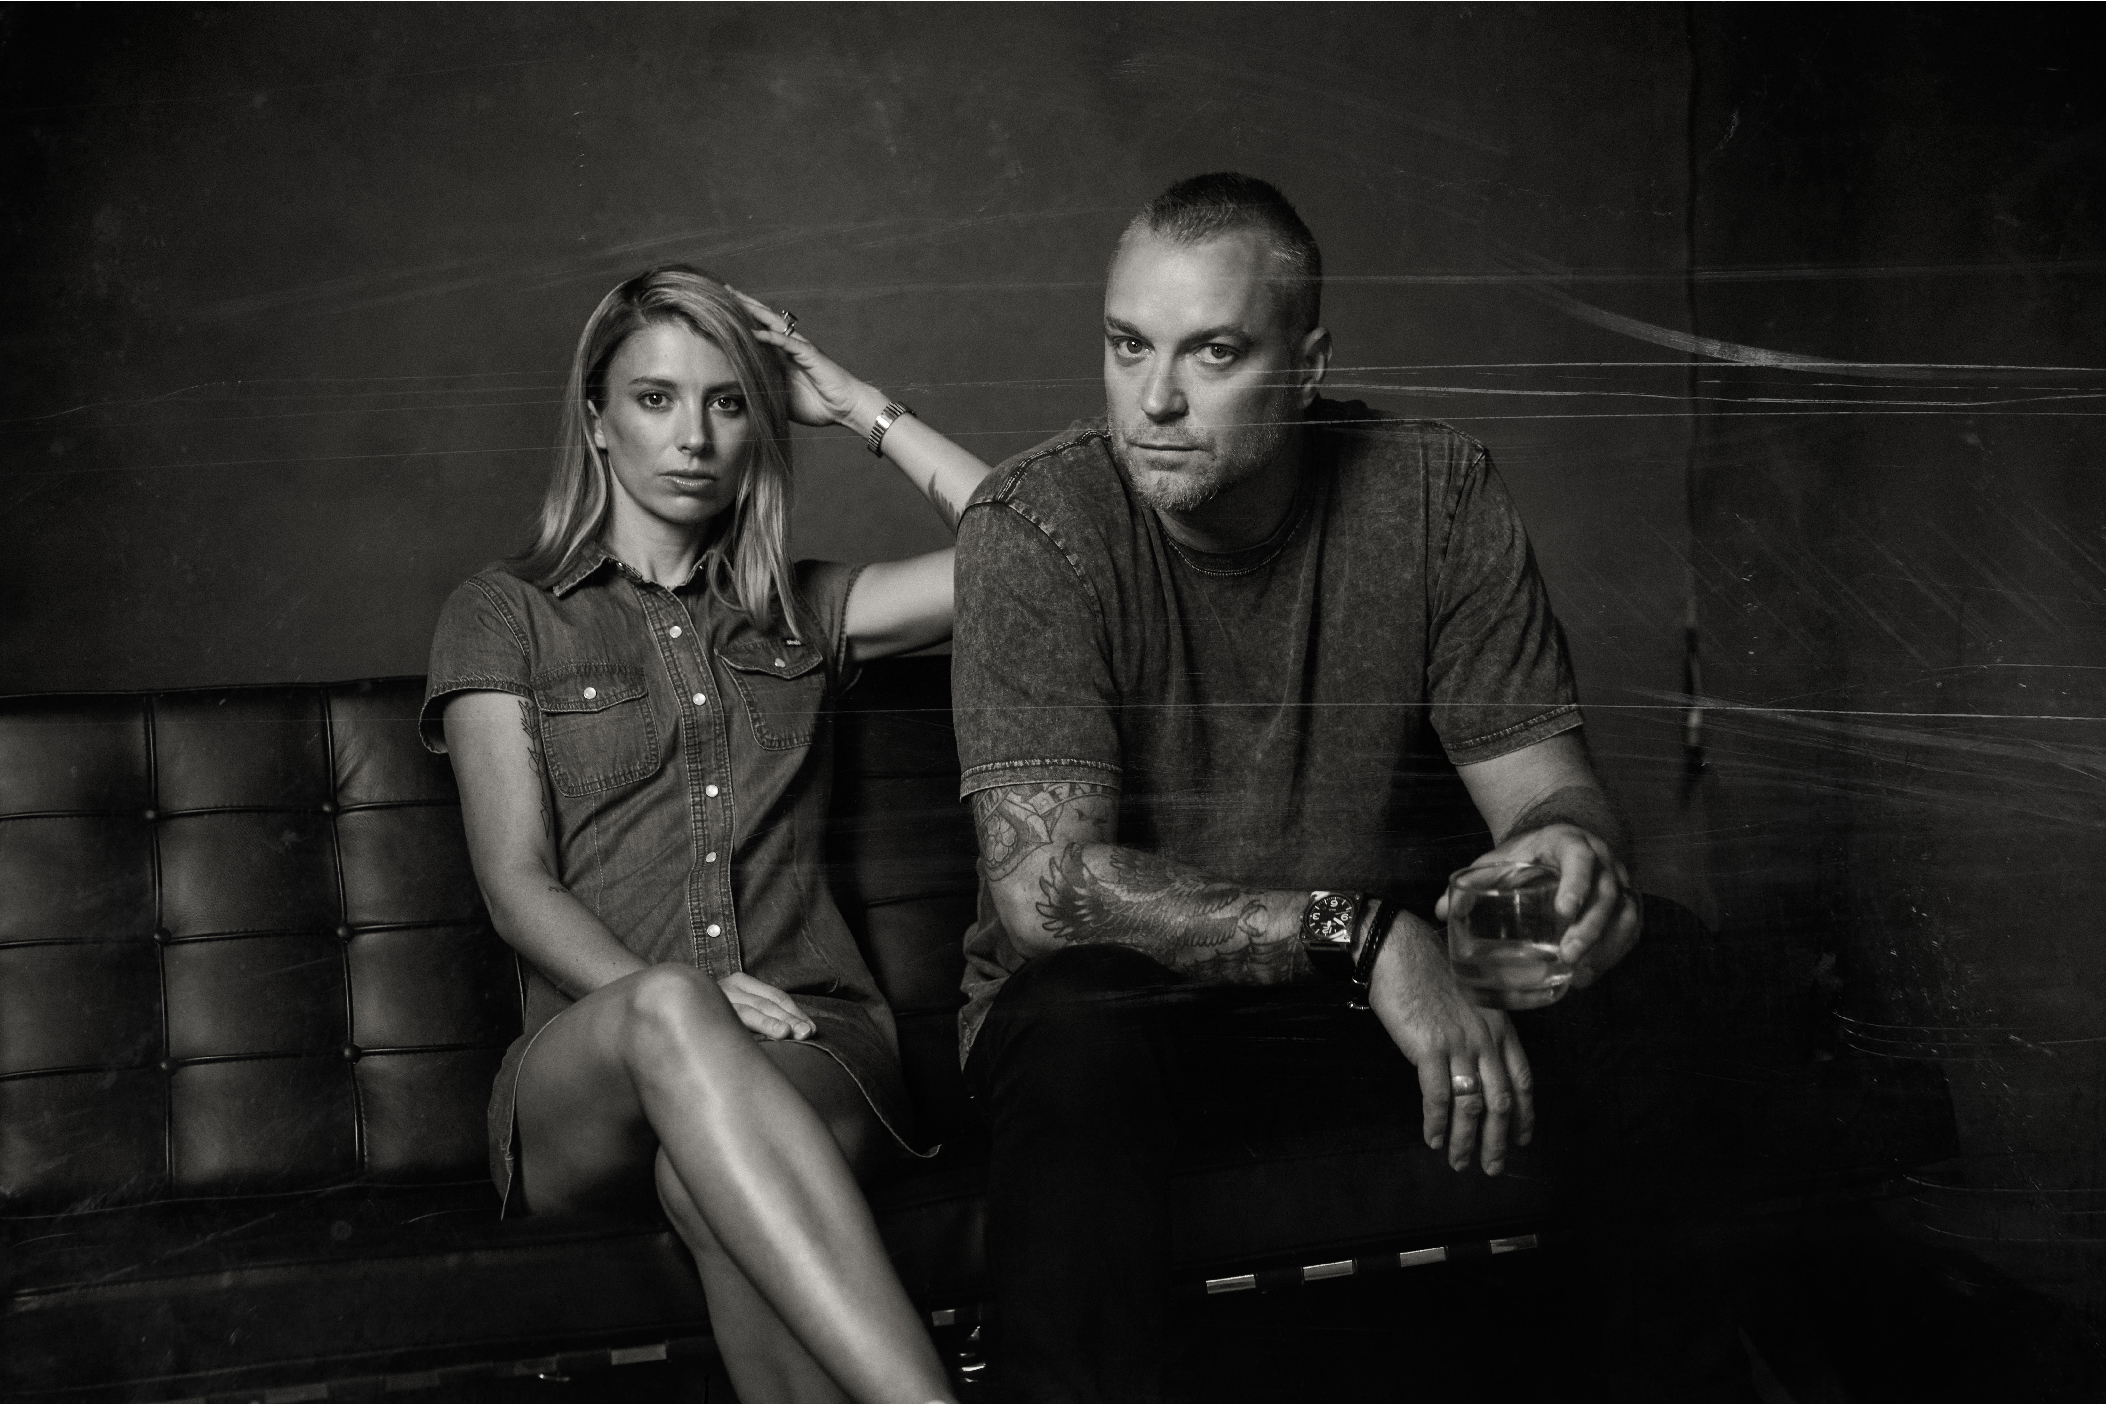 Gemma-and-Adam-Rule-Founders-of-Rhythm-Content.-Photographer-Justin-Griffiths